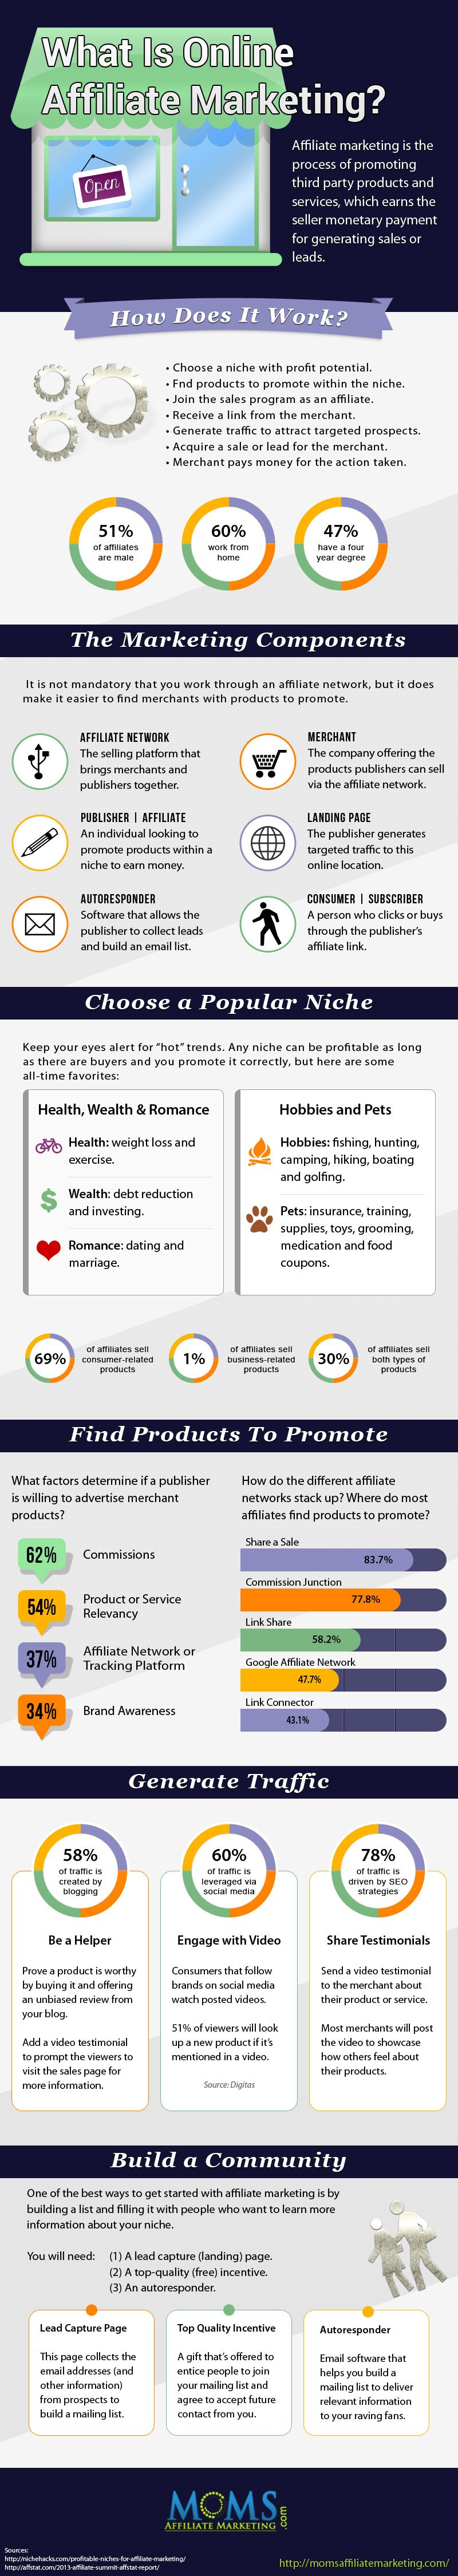 What is Online Affiliate Marketing? Infographic